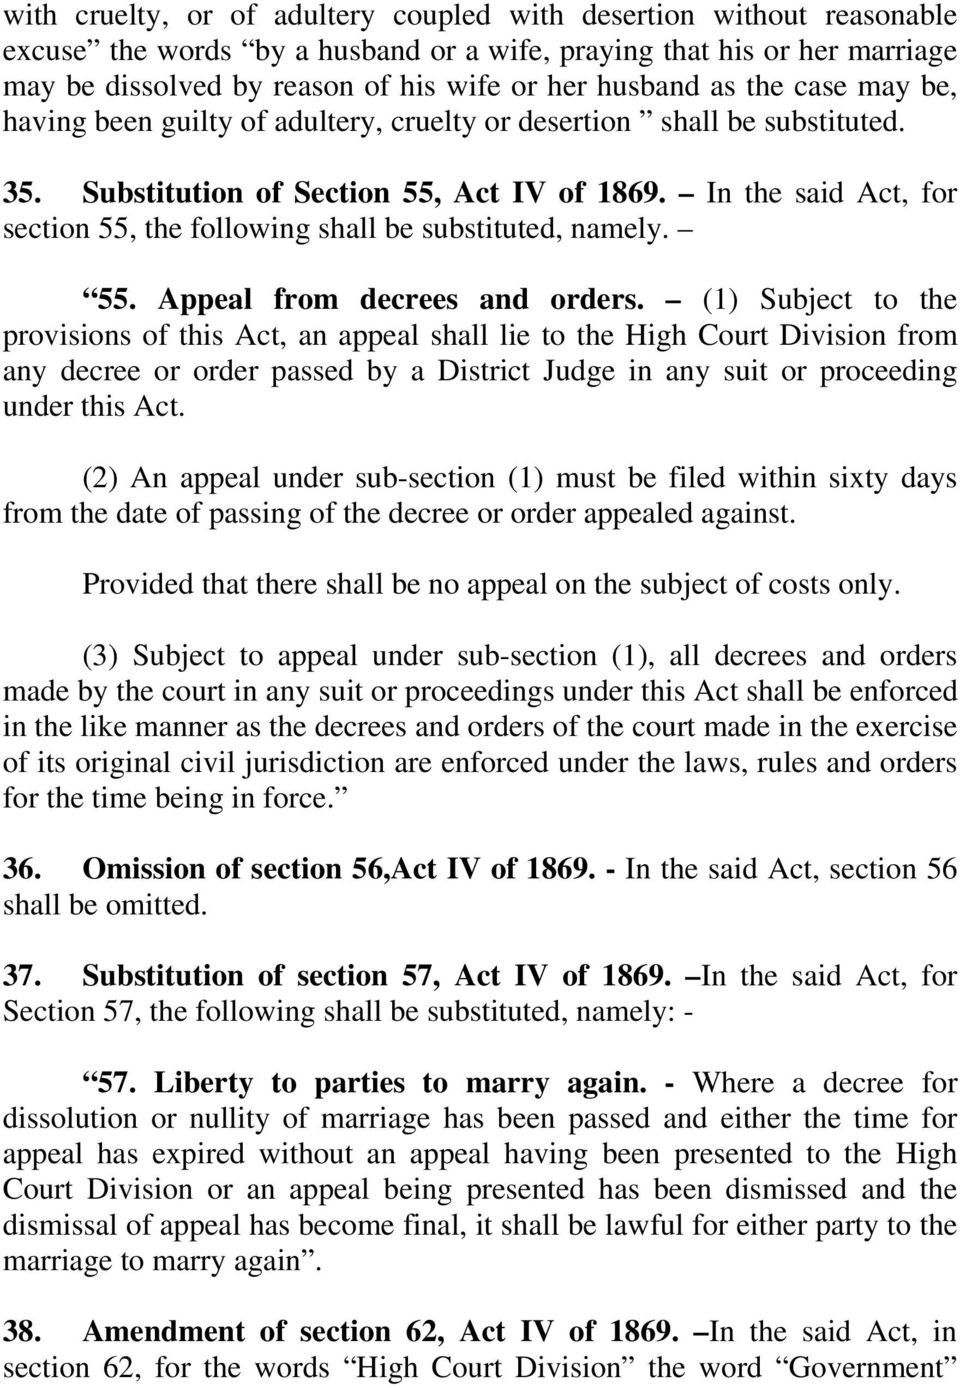 In the said Act, for section 55, the following shall be substituted, namely. 55. Appeal from decrees and orders.